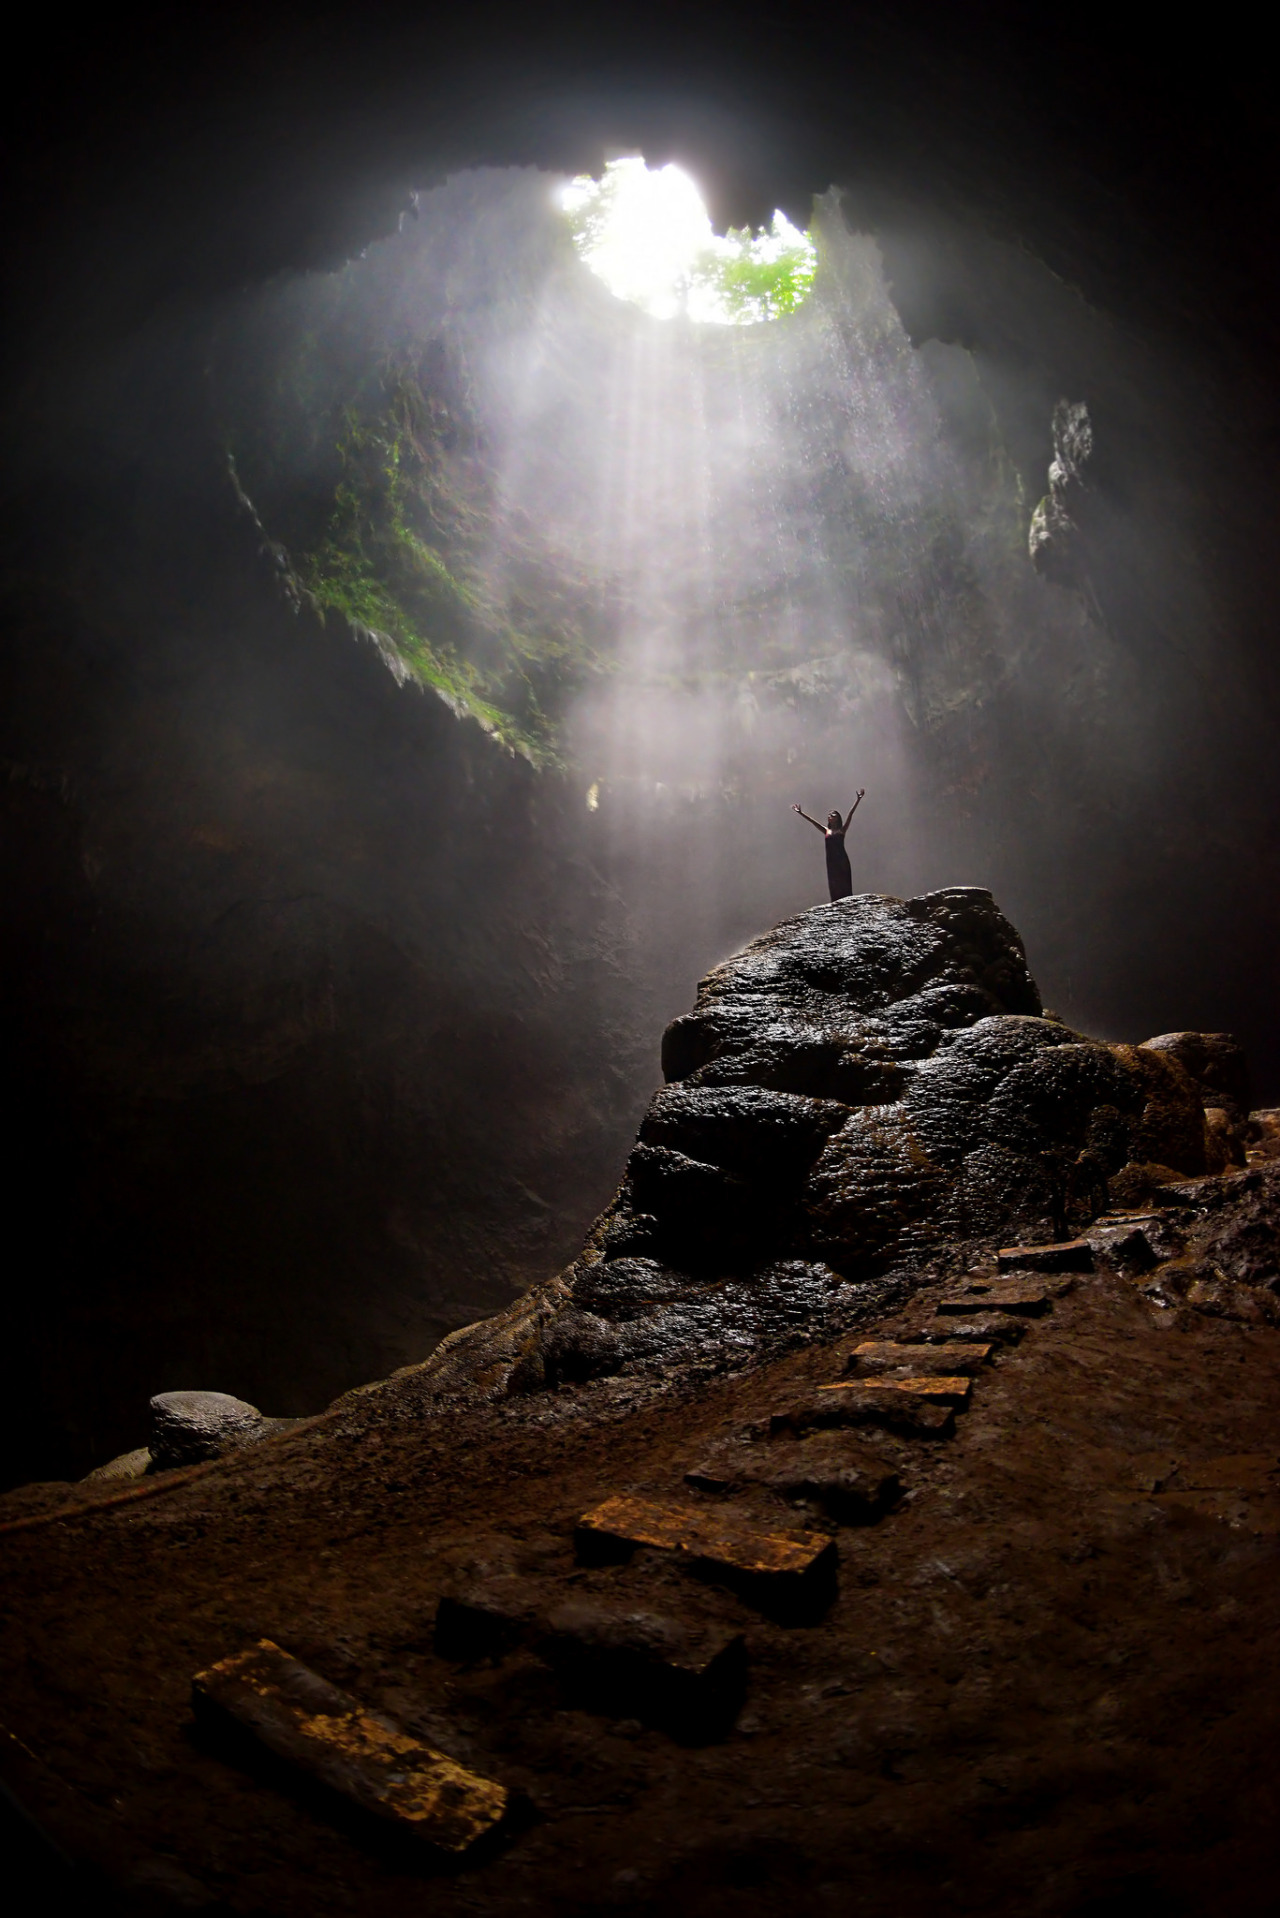 The heavenly light in Grubug Cave / Indonesia